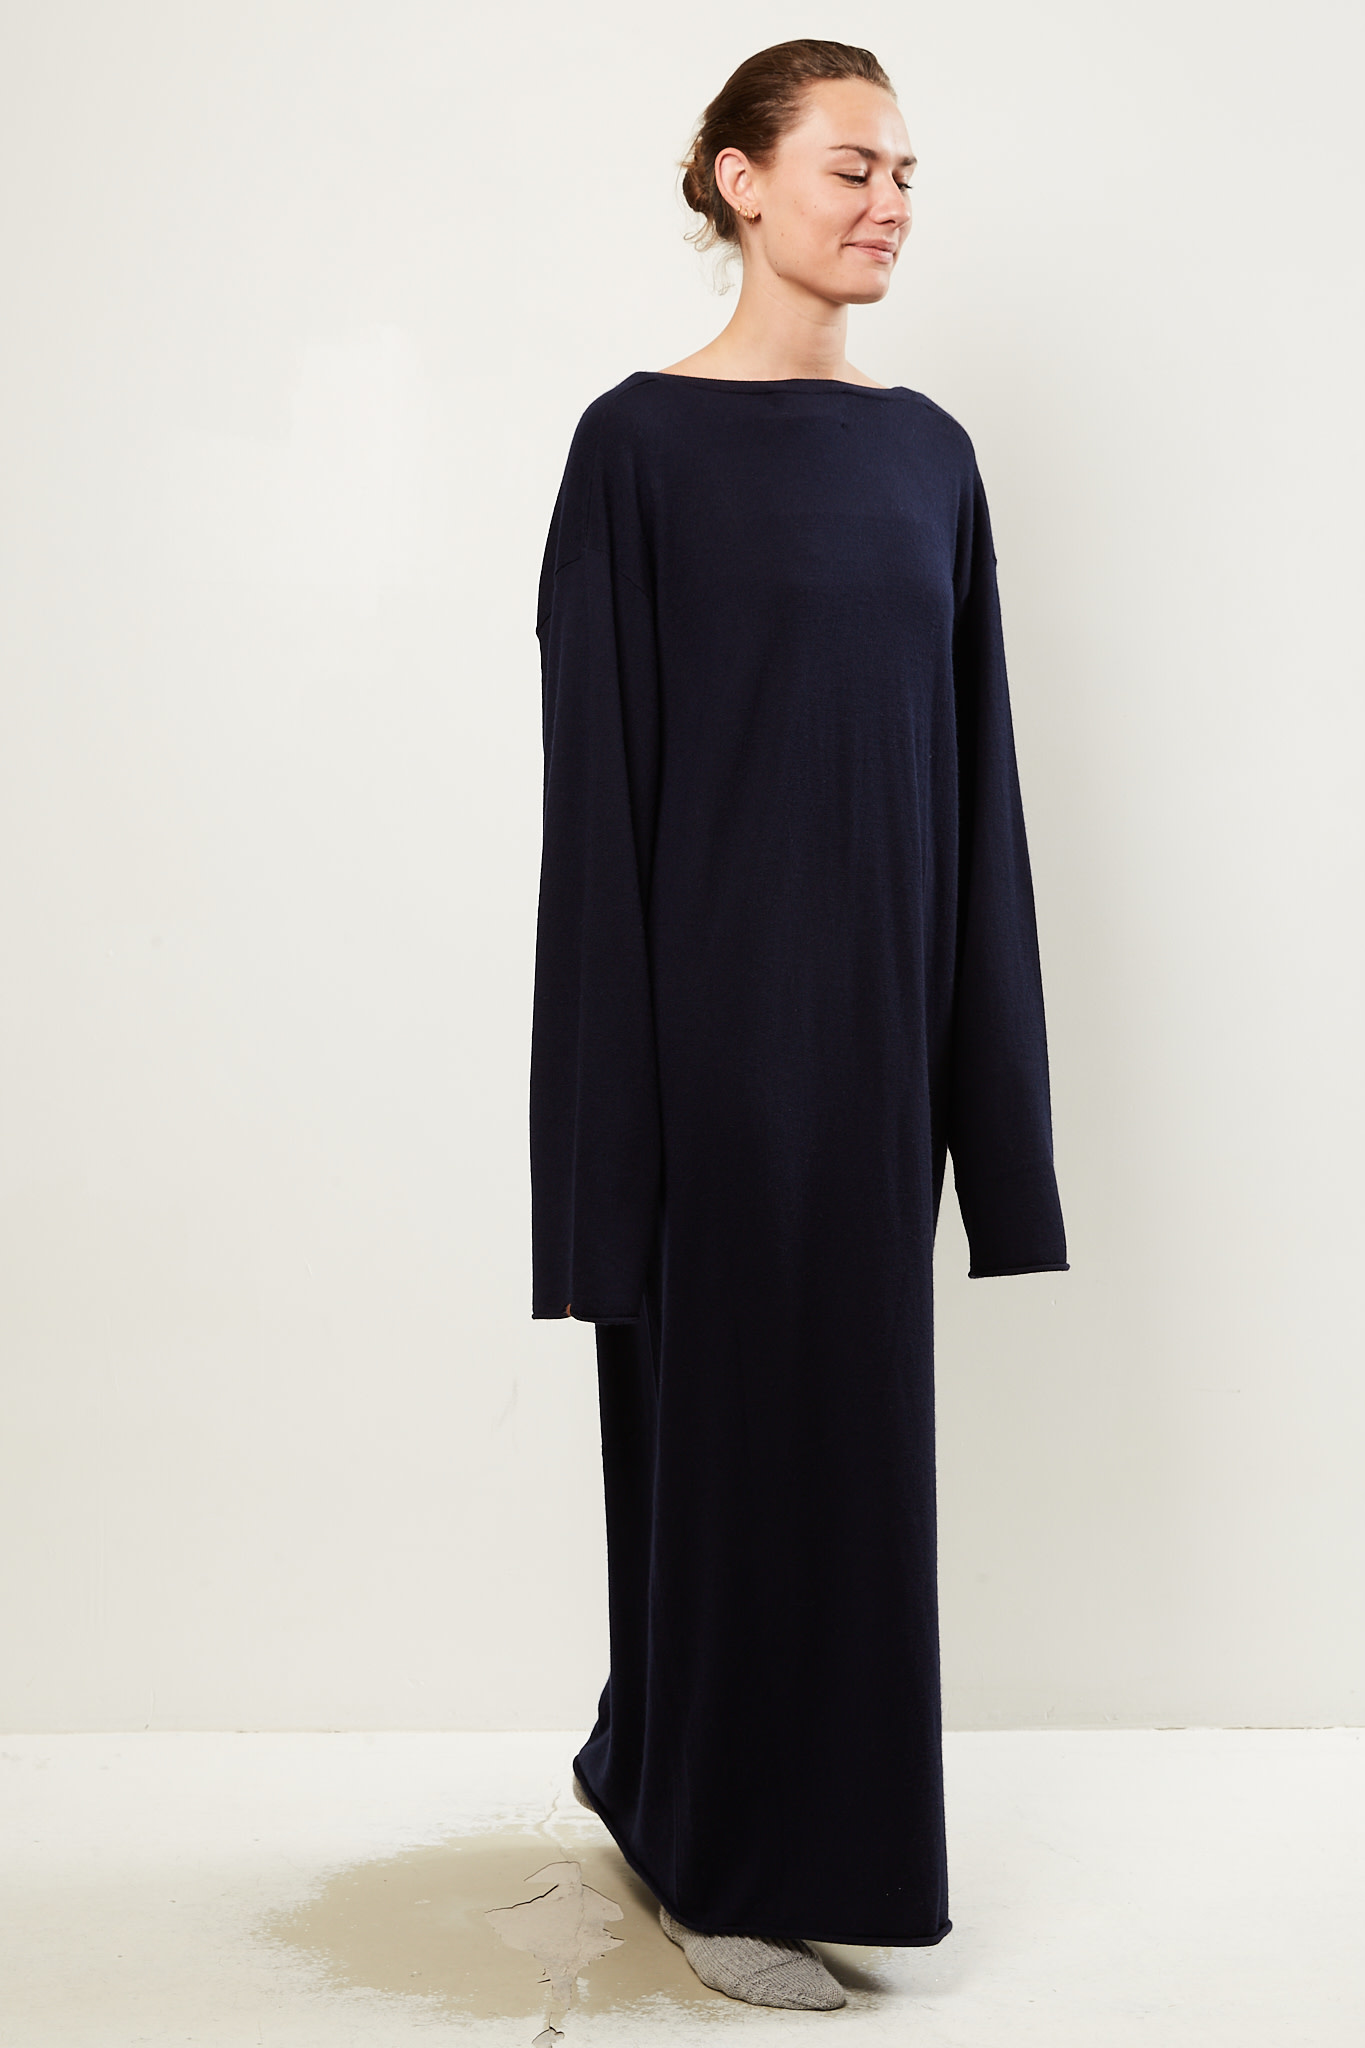 extreme cashmere - Scoop dress